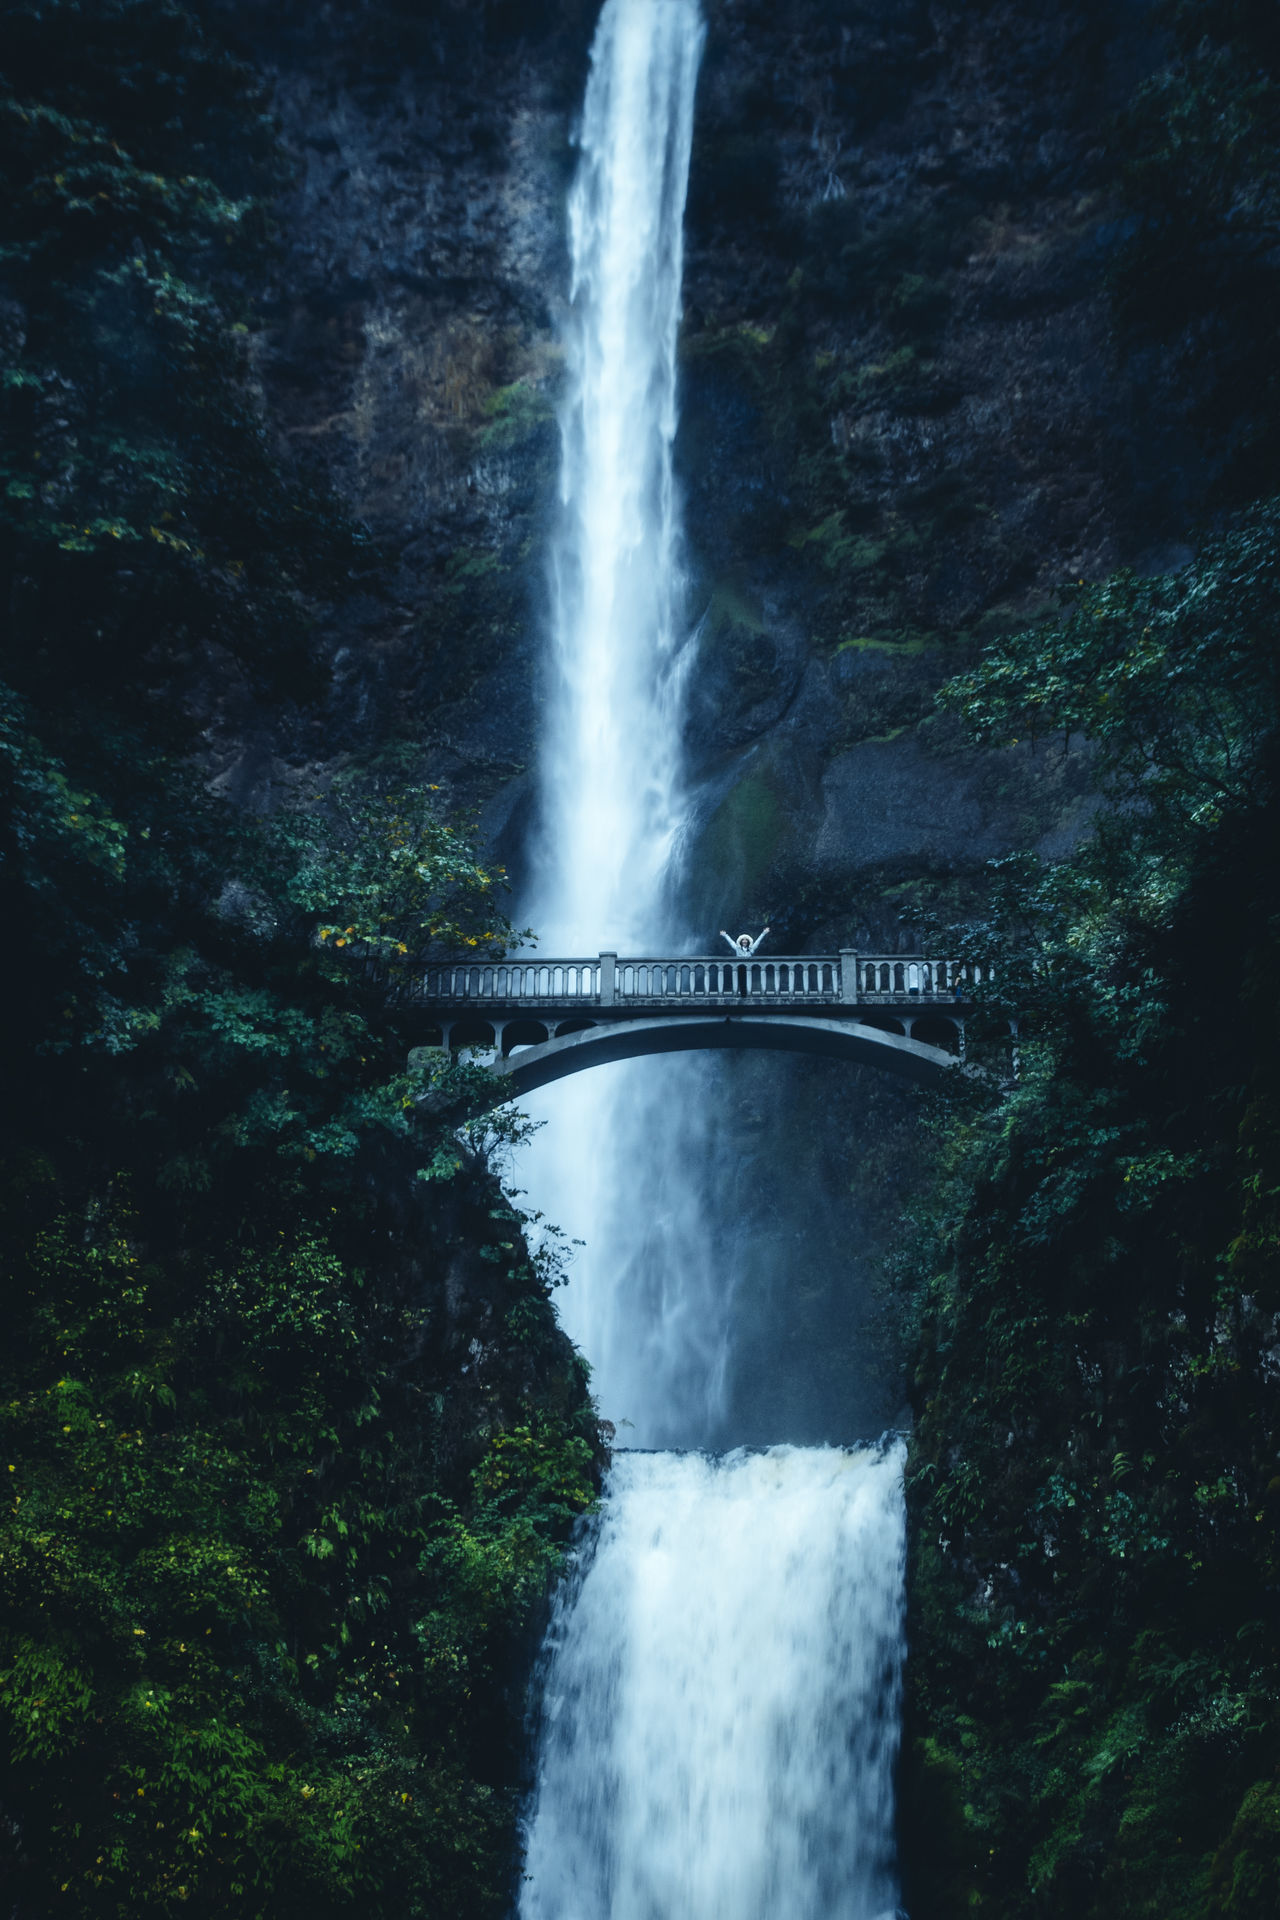 \o/ Multnomah Falls, Oregon Beauty In Nature Bridge Columbia River Gorge Dark Forest Long Exposure Motion Mt. Hood  Multnomah Falls  Nature Night Photography Oregon Outdoors Speed Water Waterfall